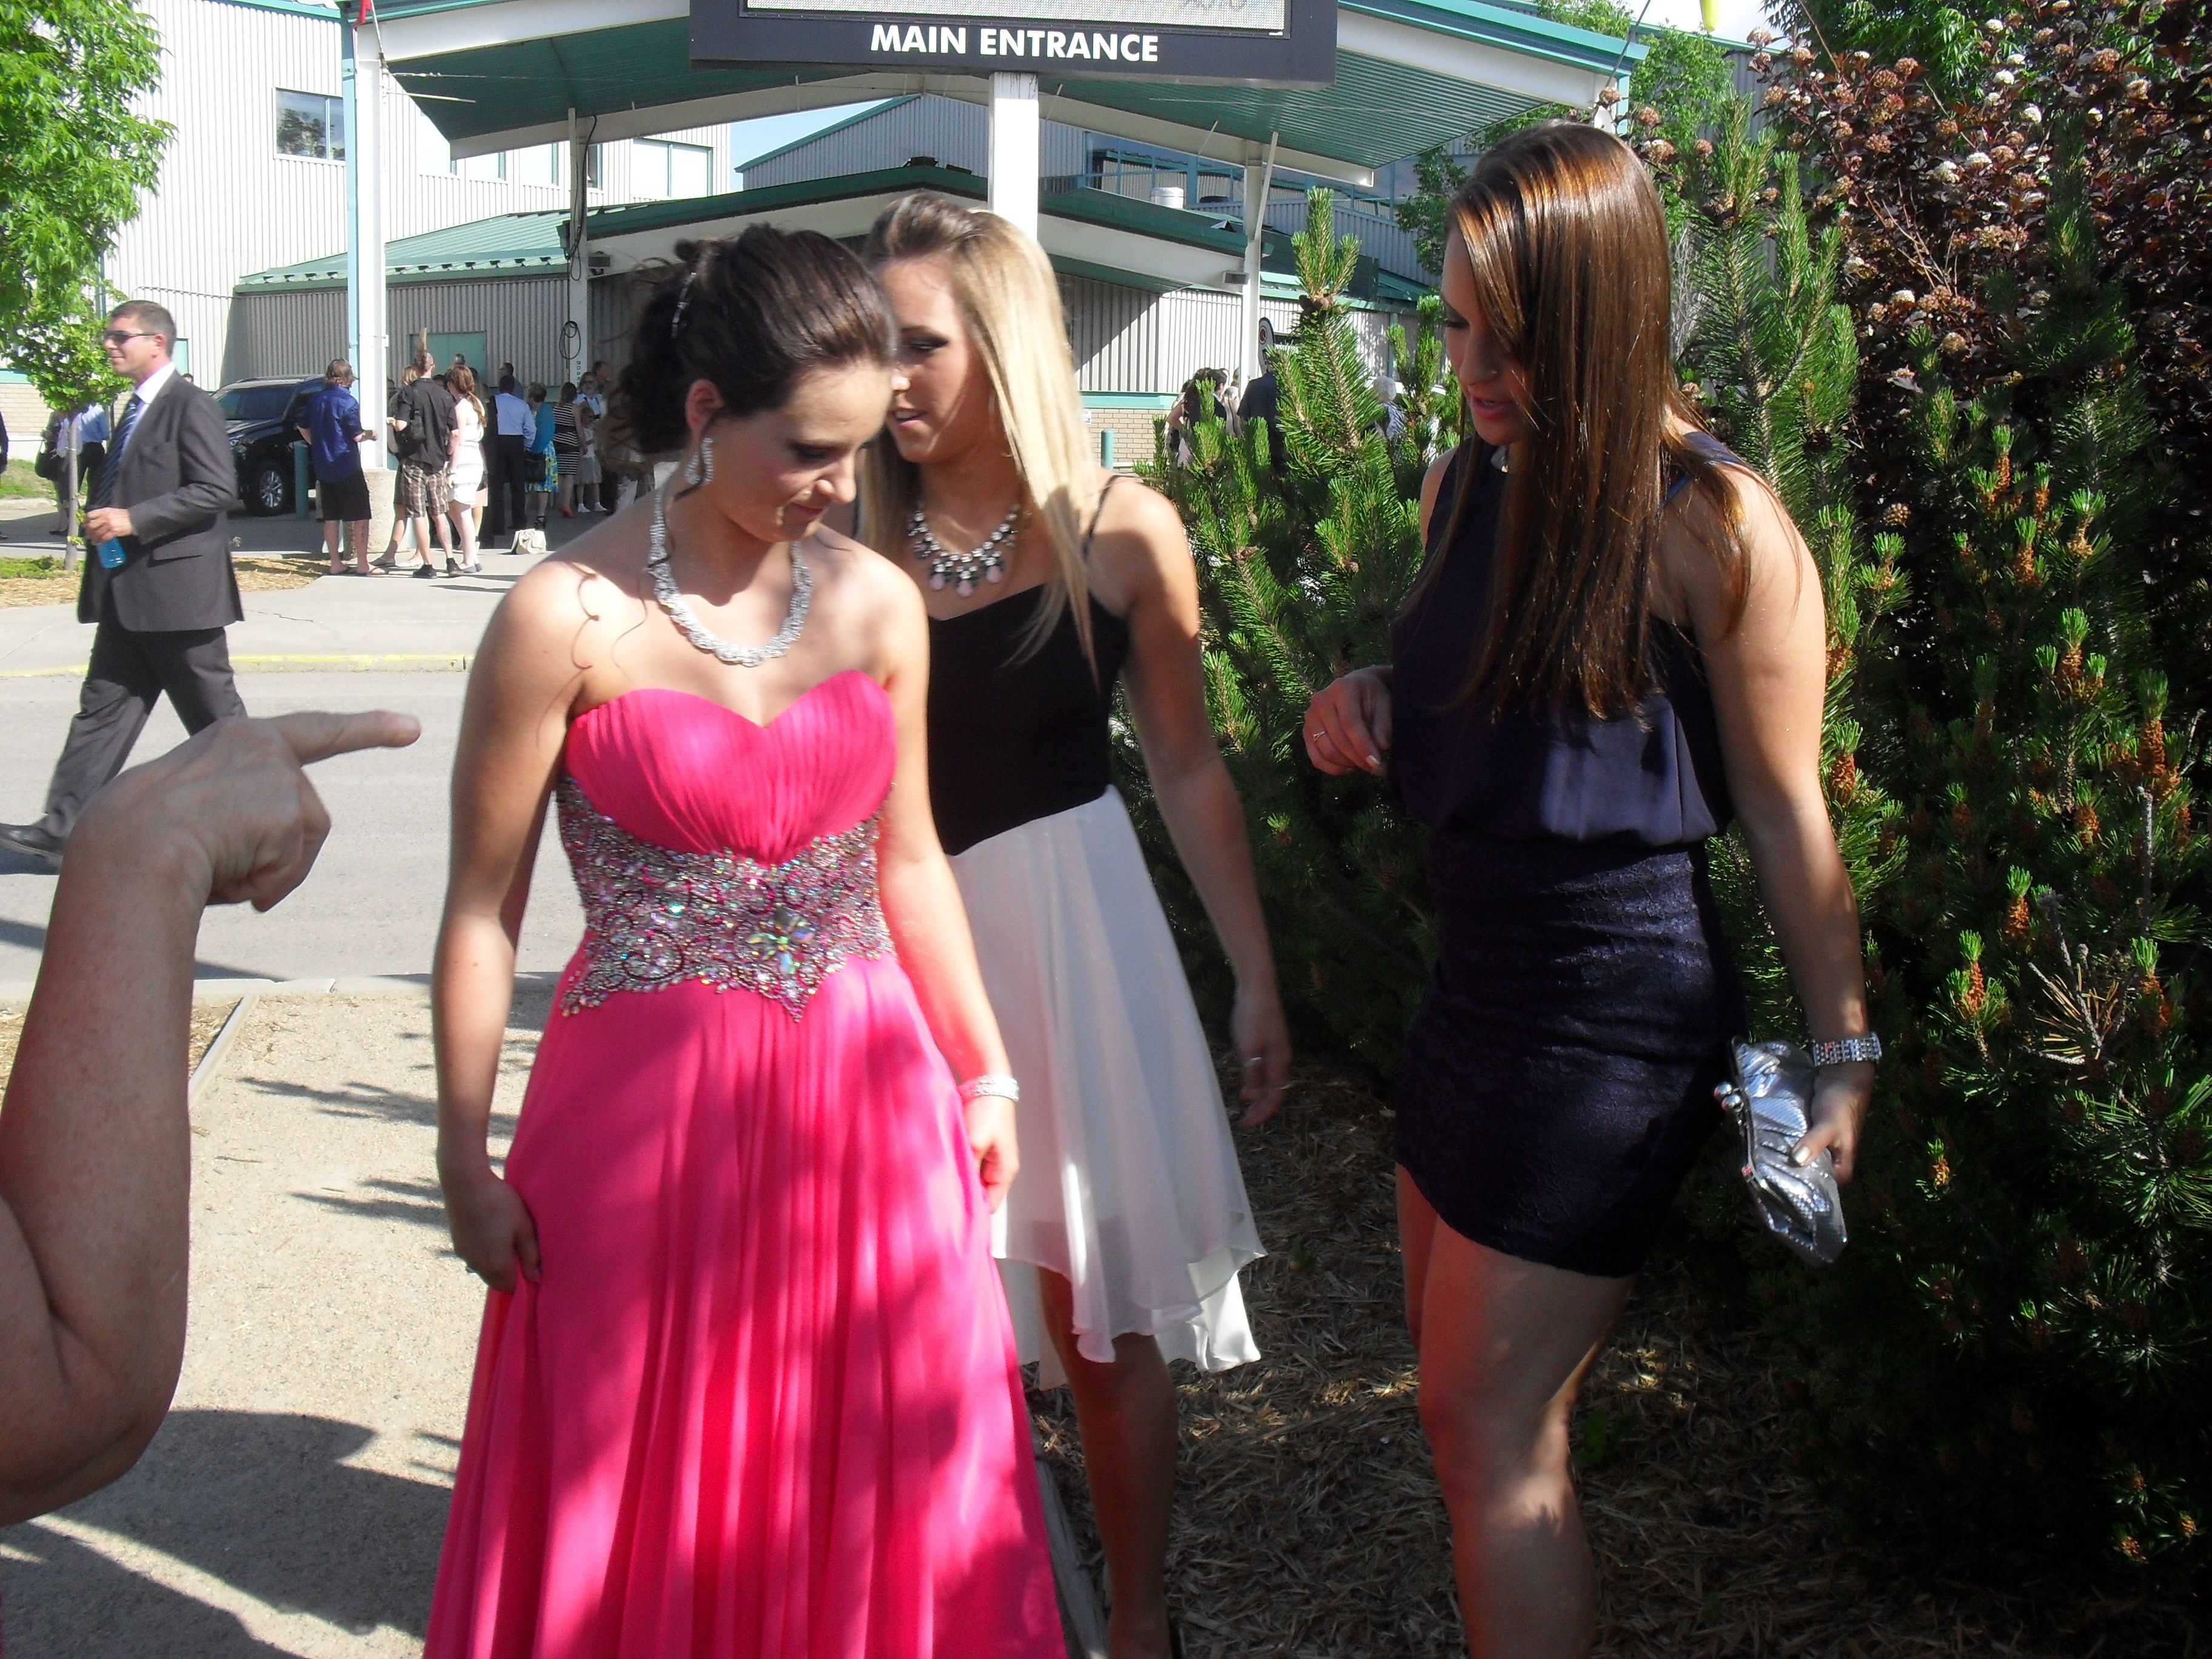 Kady S Grade 12 Grad Dress June 2015 Gorgeous Pink Color On Her